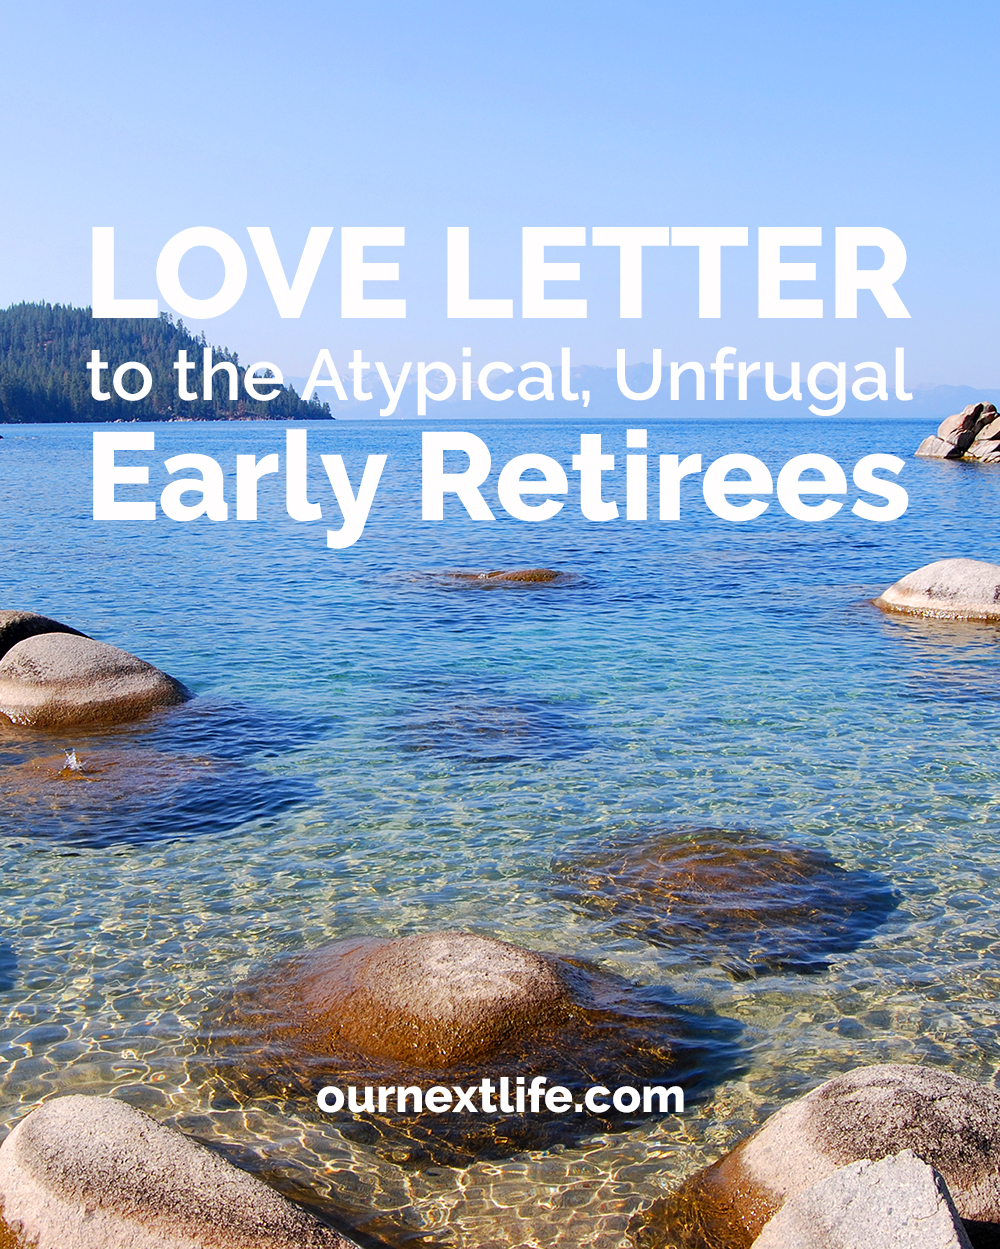 Love Letter to the Atypical, Unfrugal Early Retirees